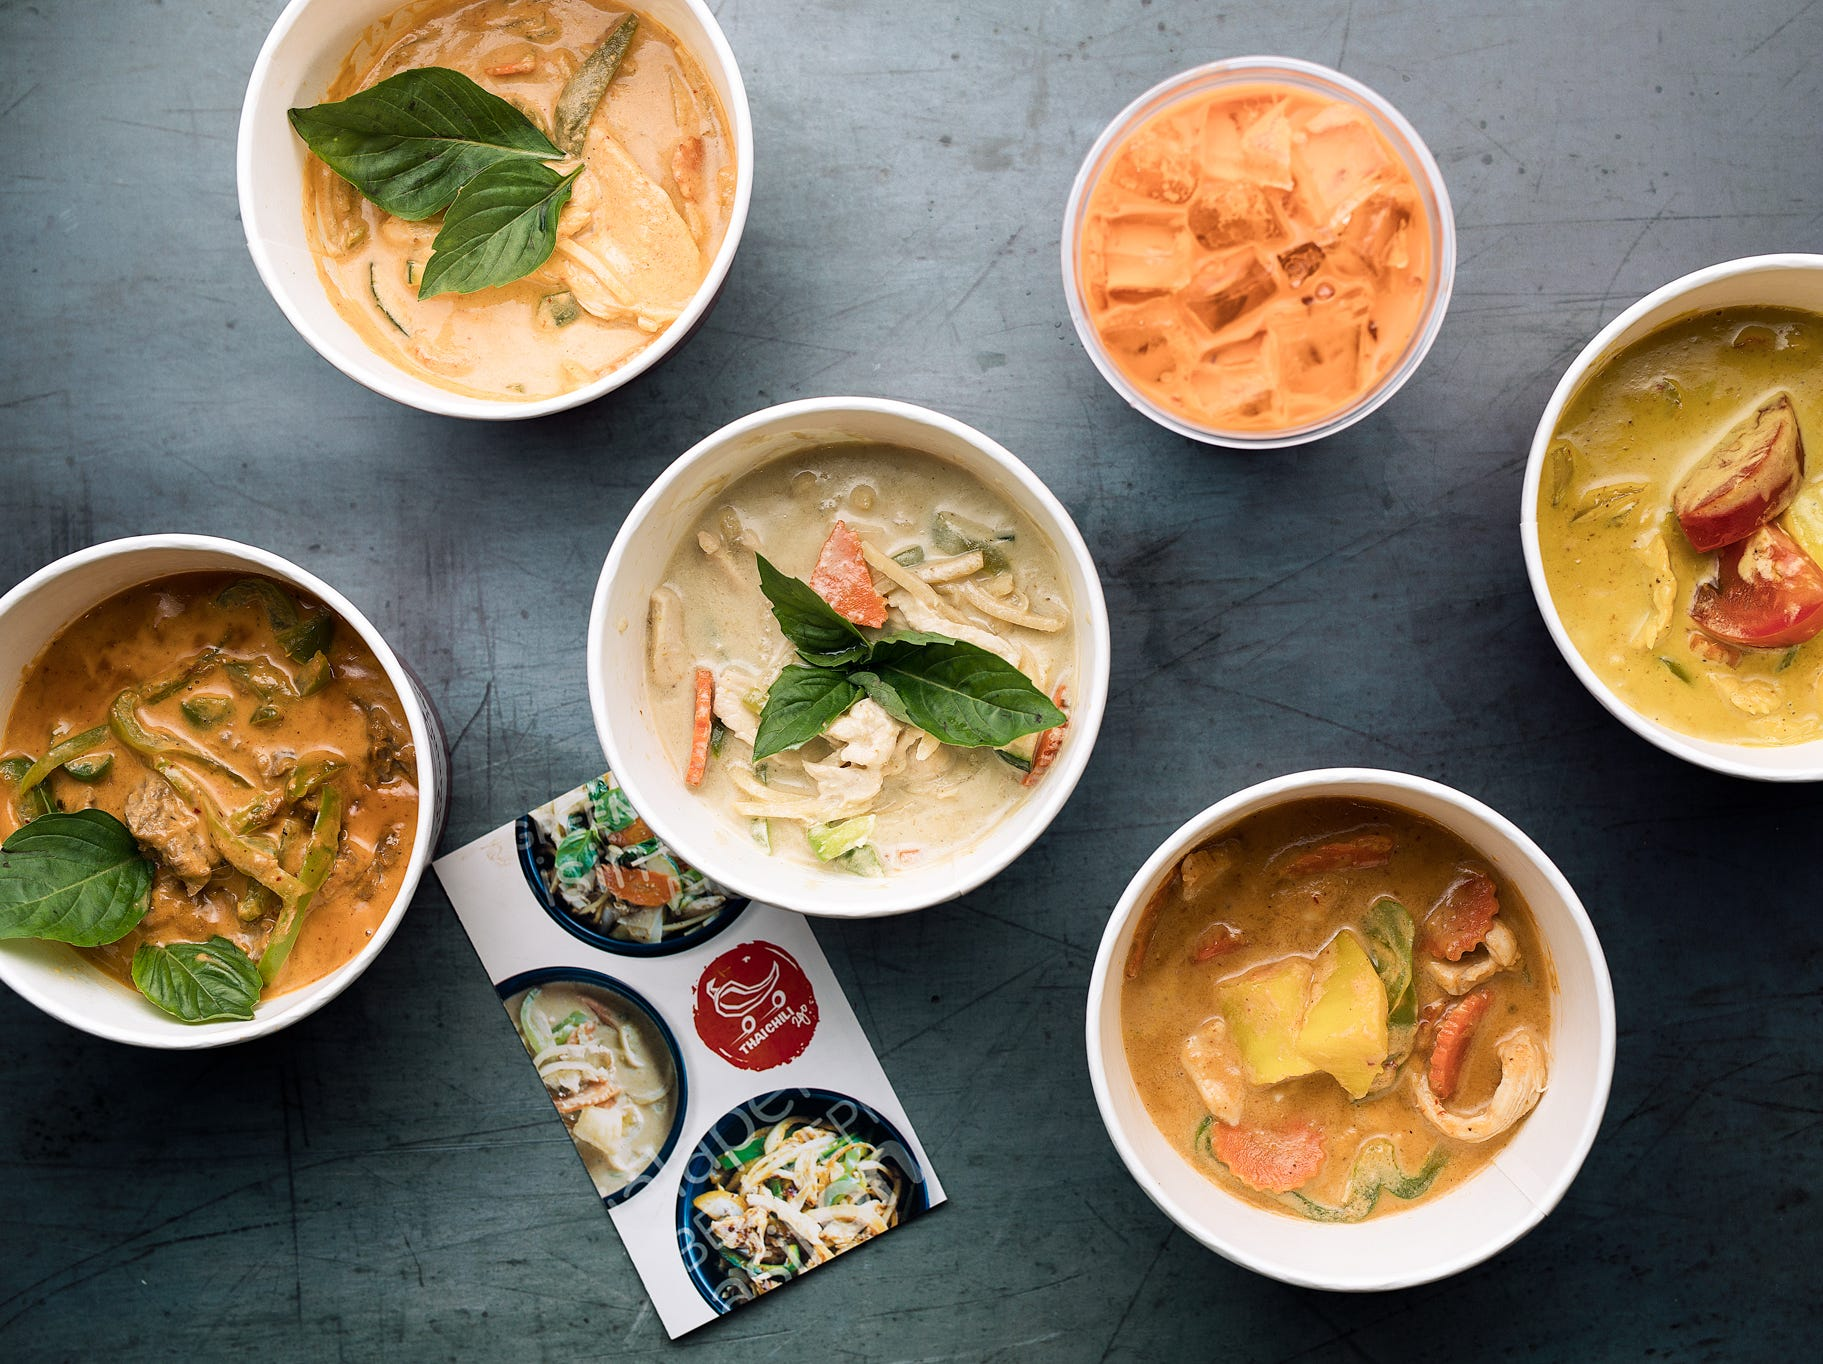 Thai Chili 2 Go serves Thai Hot and Sour Soup, Pad Thai, Drunken Noodles, Thai Fried Rice, Yellow Curry, Red Curry, Panang Curry and more.